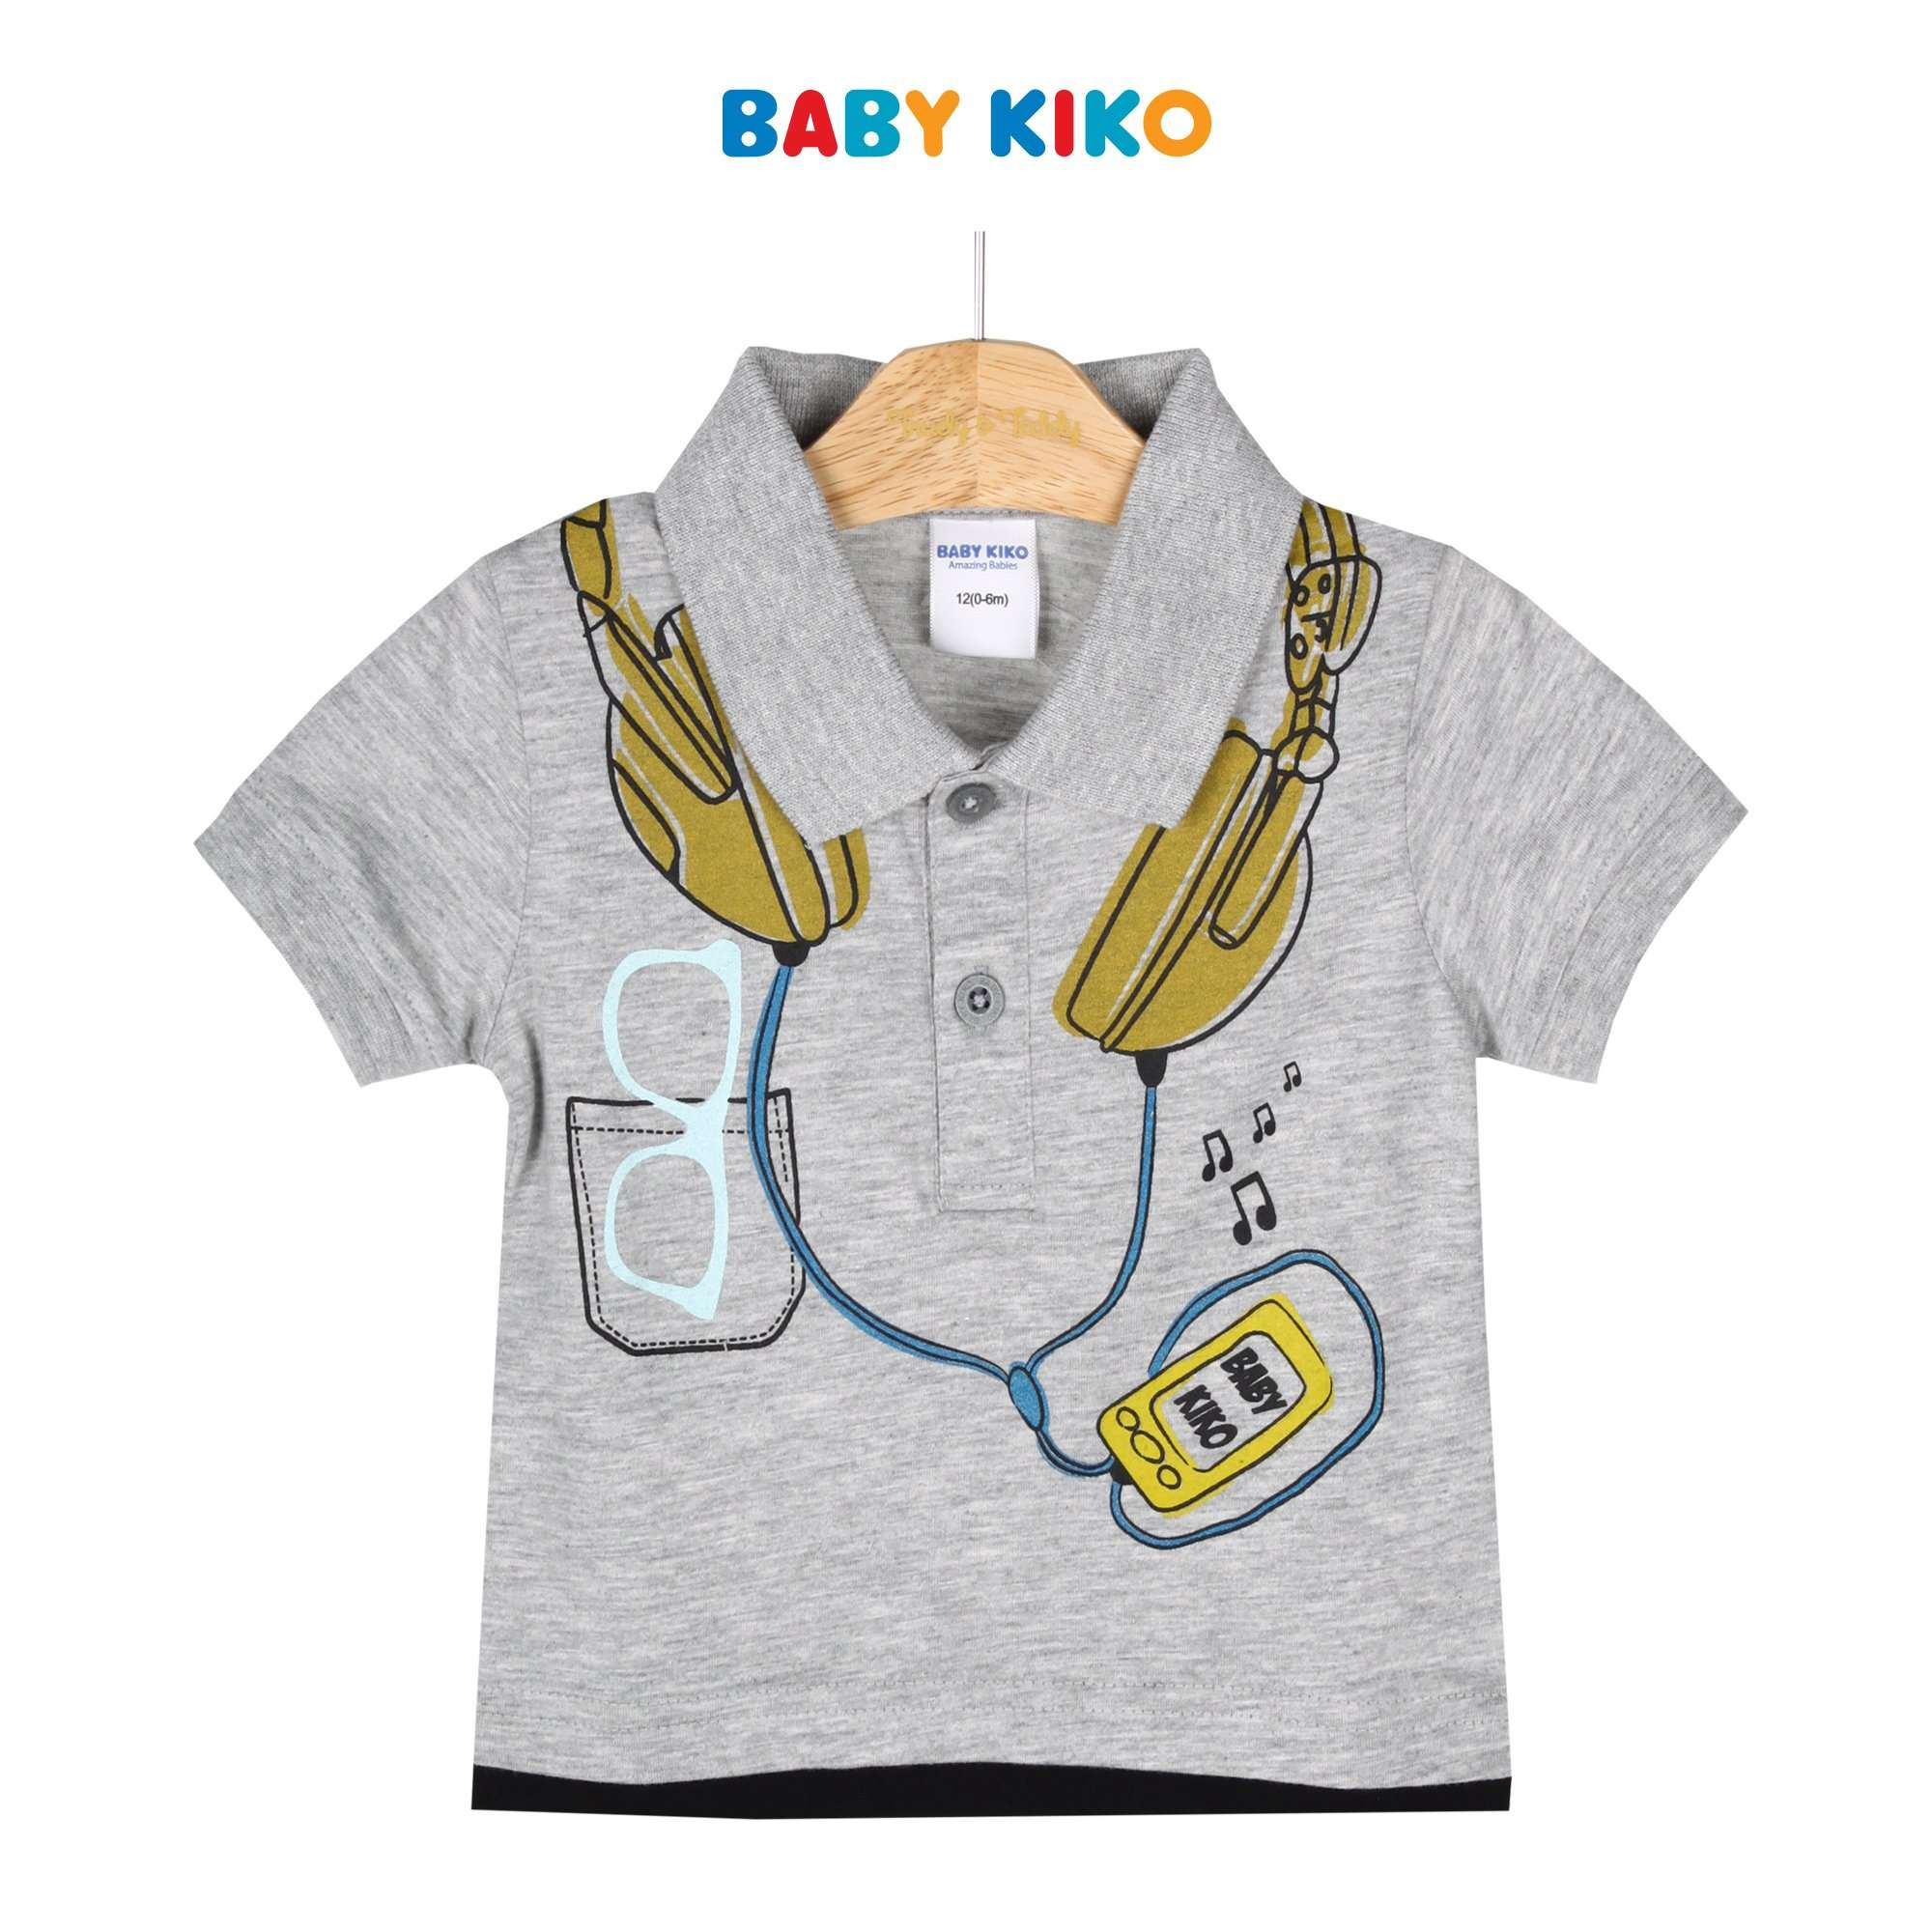 Baby KIKO Baby Boy Short Sleeve Collar Tee 330072-121 : Buy Baby KIKO online at CMG.MY